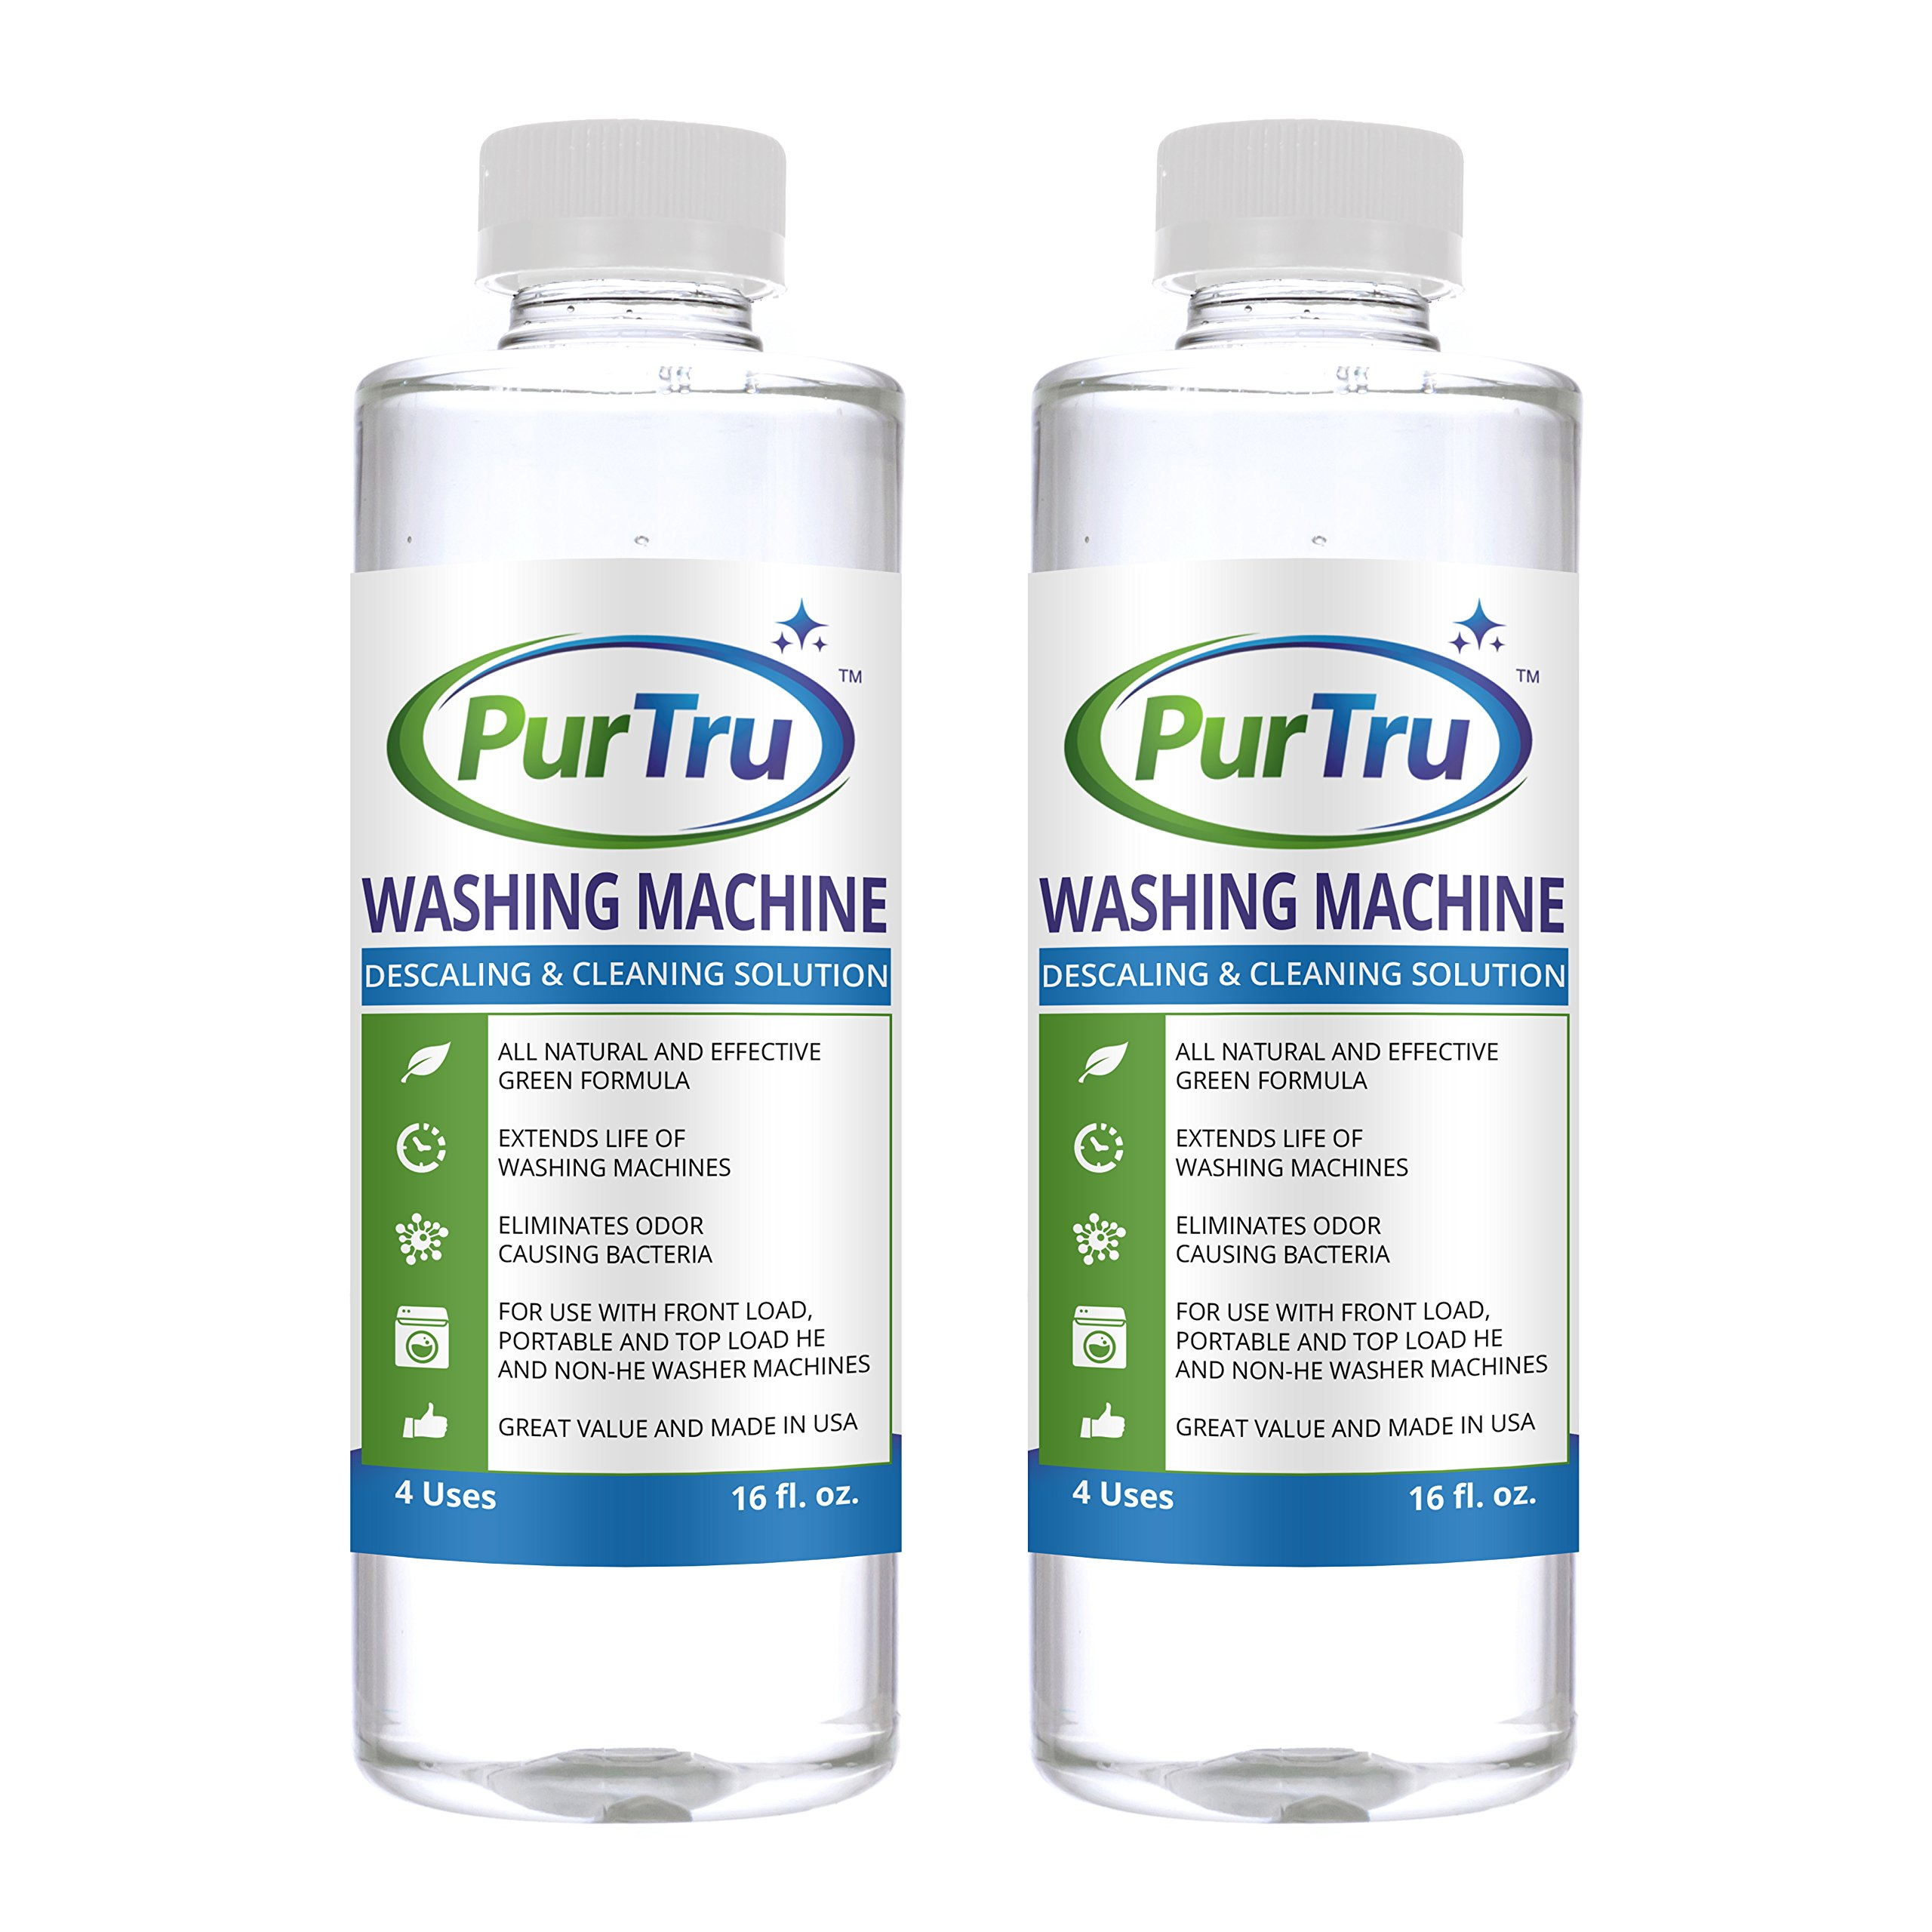 Washing Machine Cleaner (2 Pack) - All Natural and Safe Descaling & Cleaning Solution For Maytag, Whirlpool, Kenmore And All Top Load, Front Load, Portable, HE and Non-HE Washers